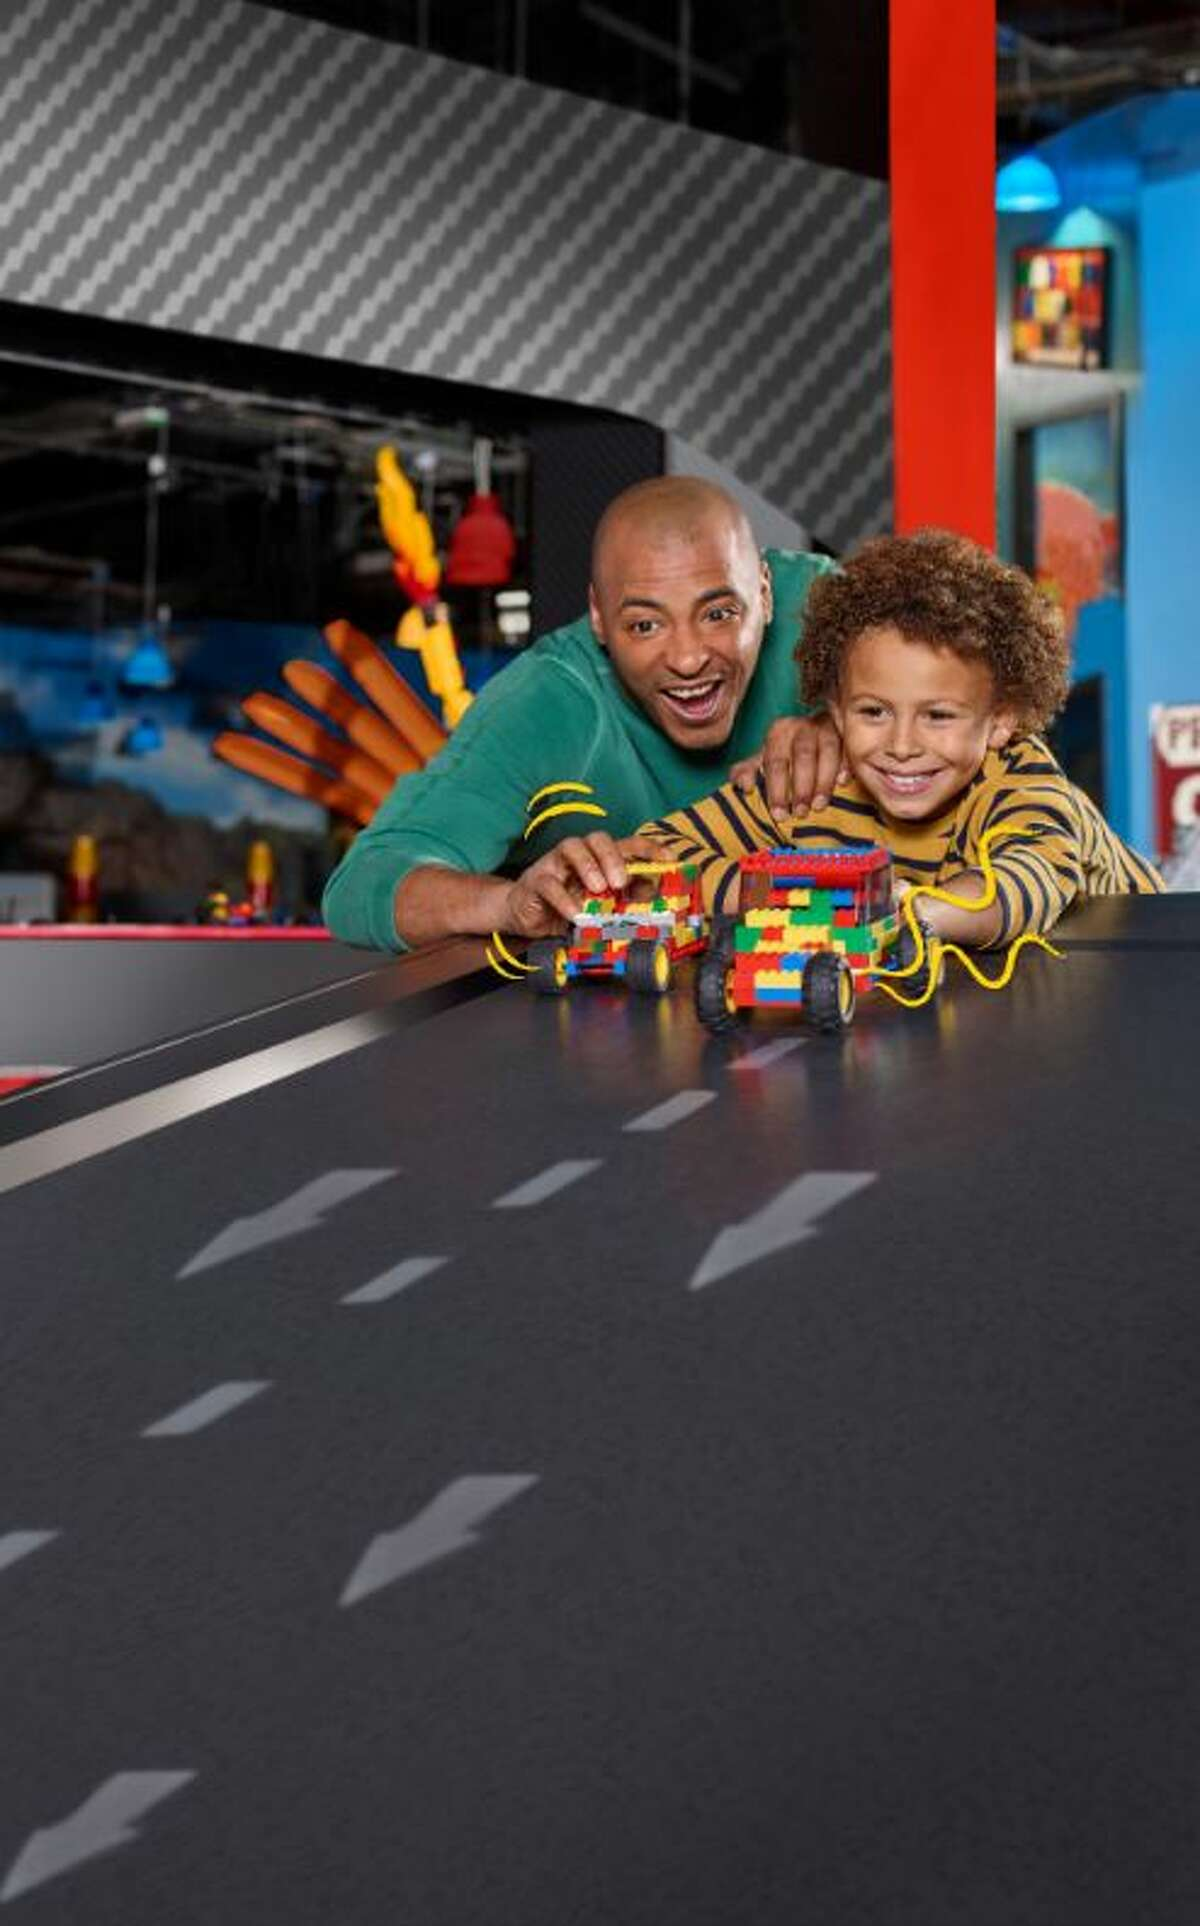 San Antonio's new Legoland Discovery Center, at the Shops at Rivercenter mall, is set to celebrate its grand opening April 12-14.